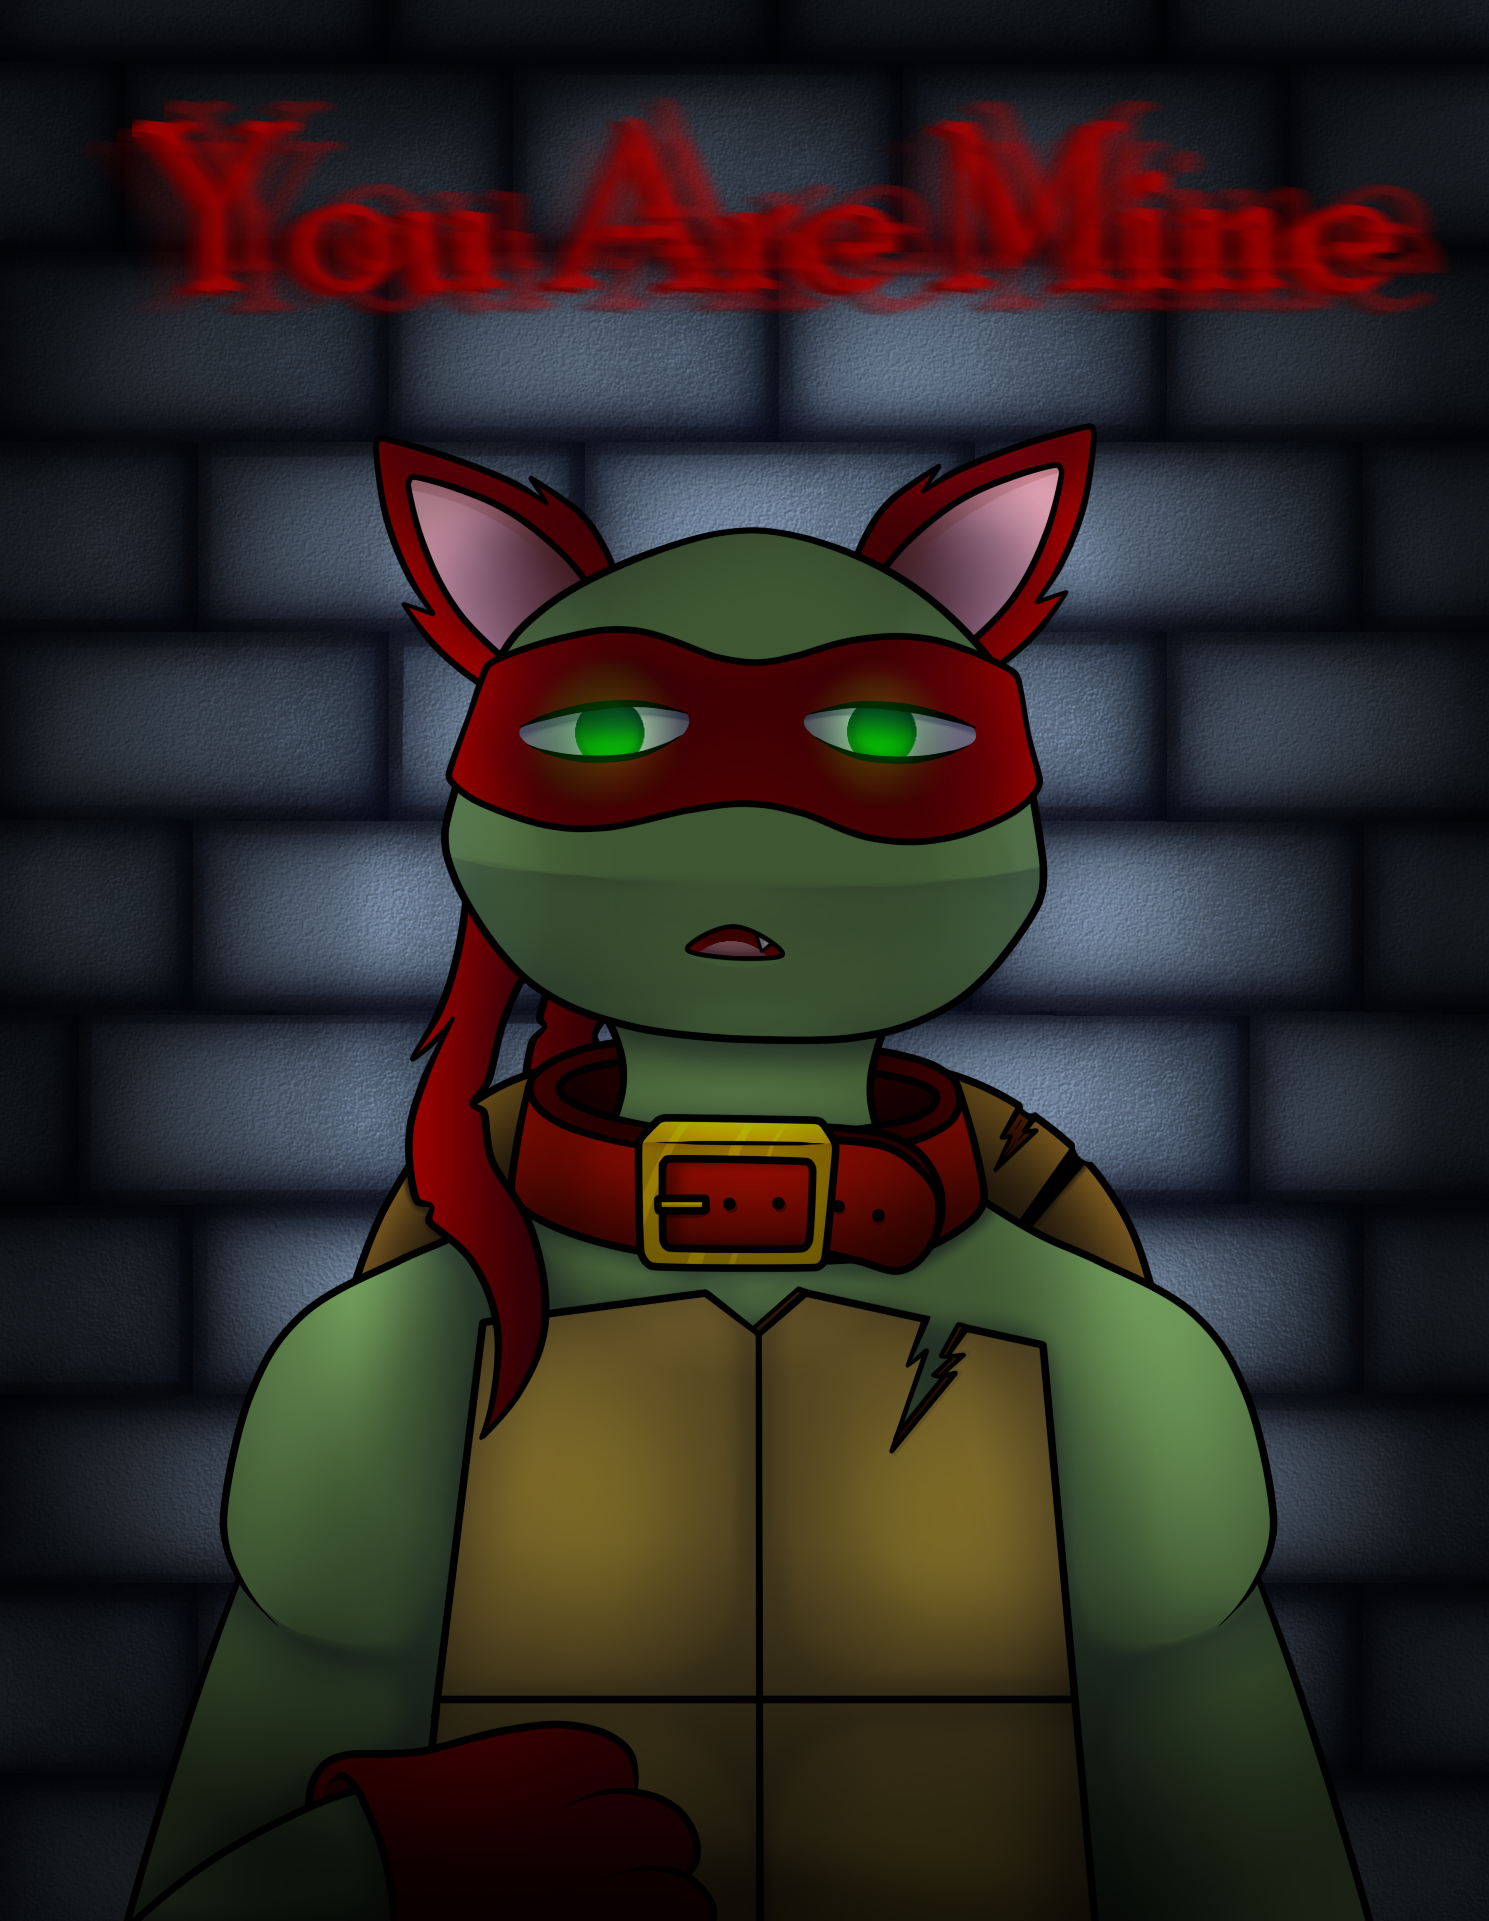 Fanfiction on raph-x-leo - DeviantArt